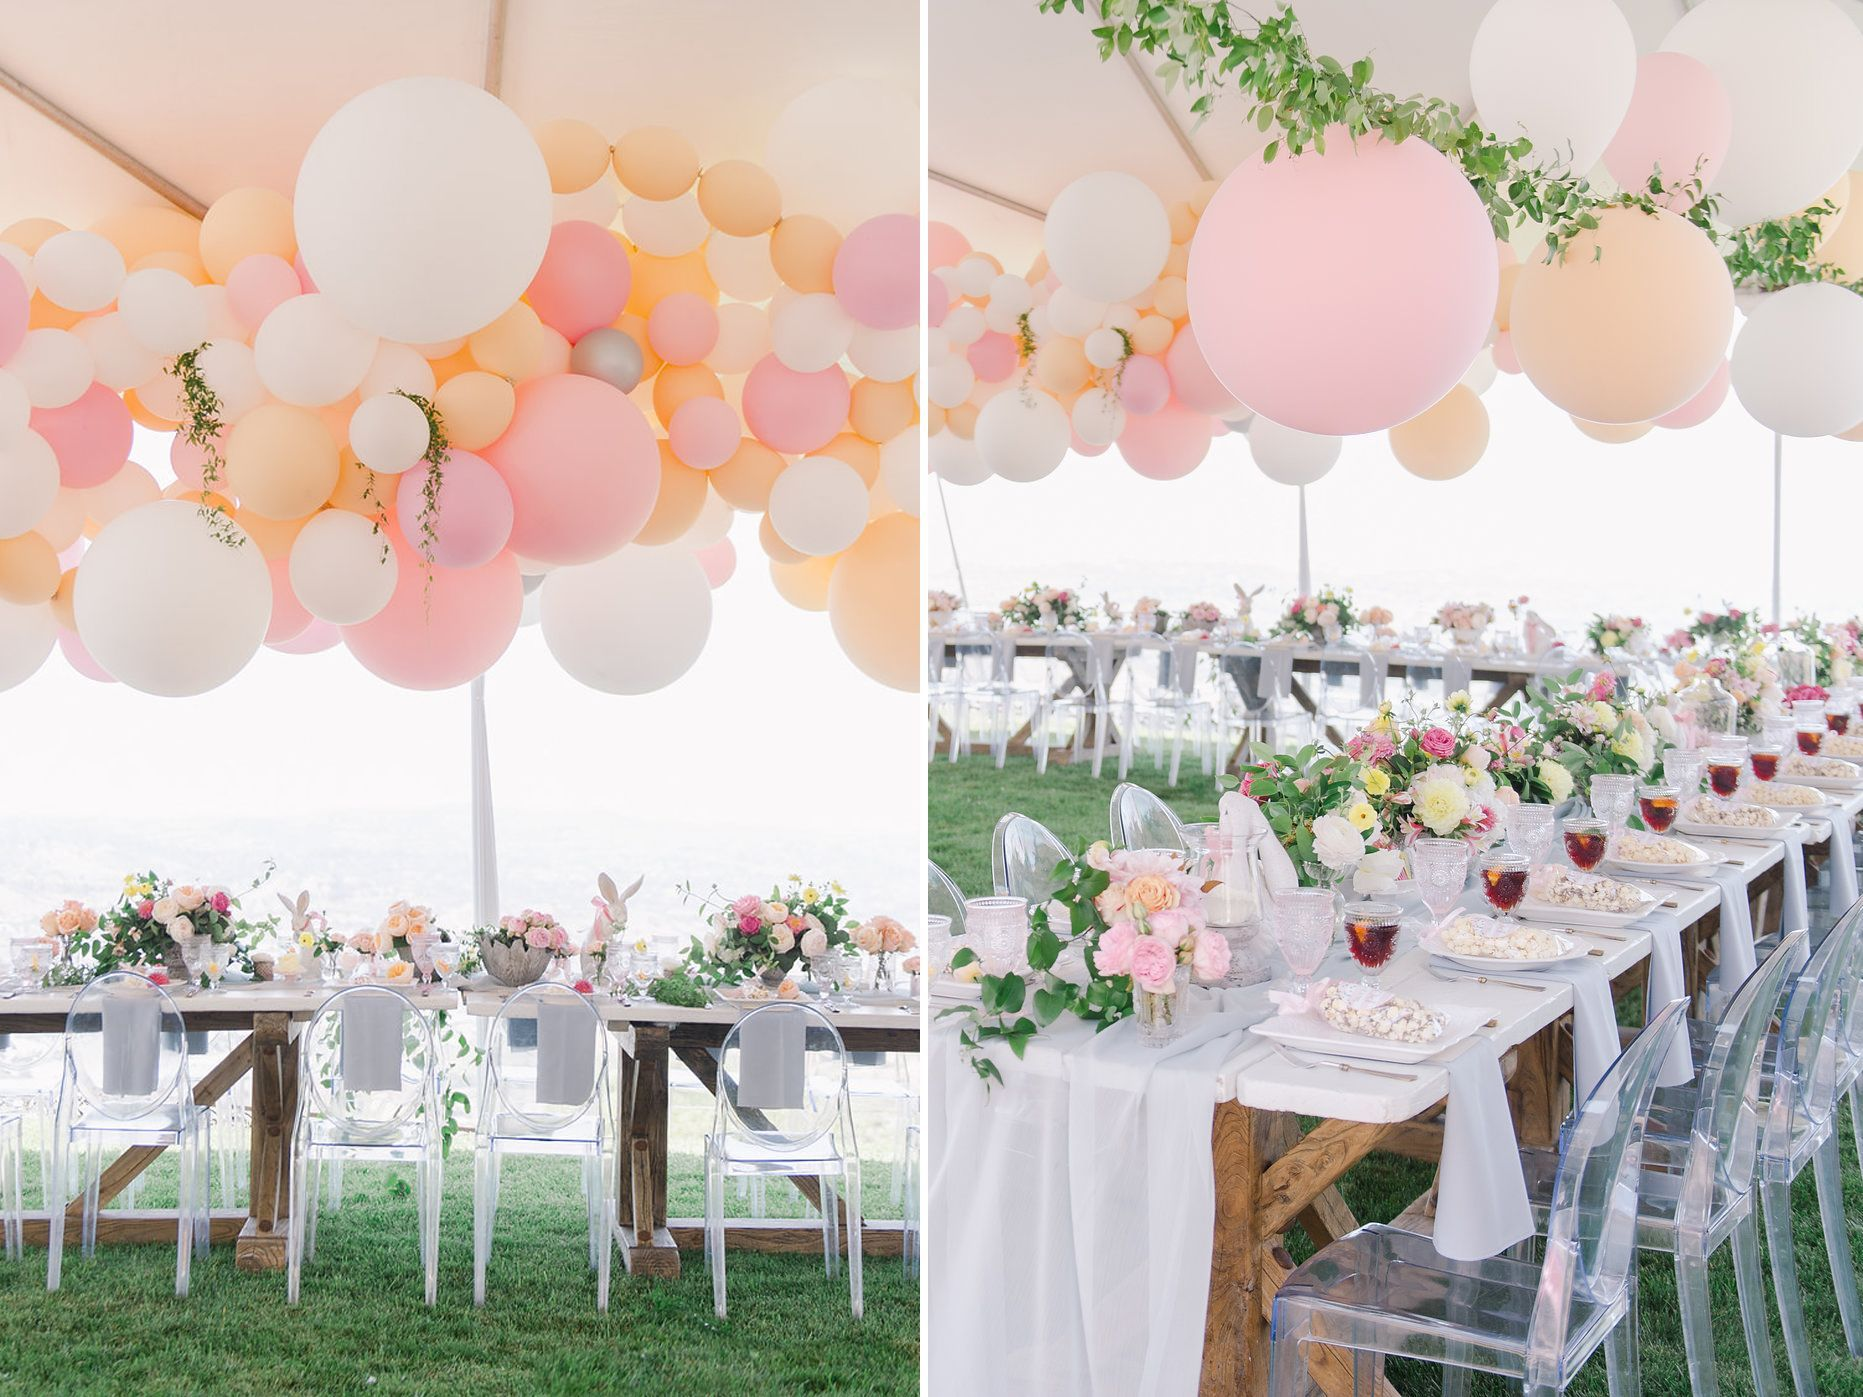 10 New Ways To Decorate Your Party With Balloons With Images